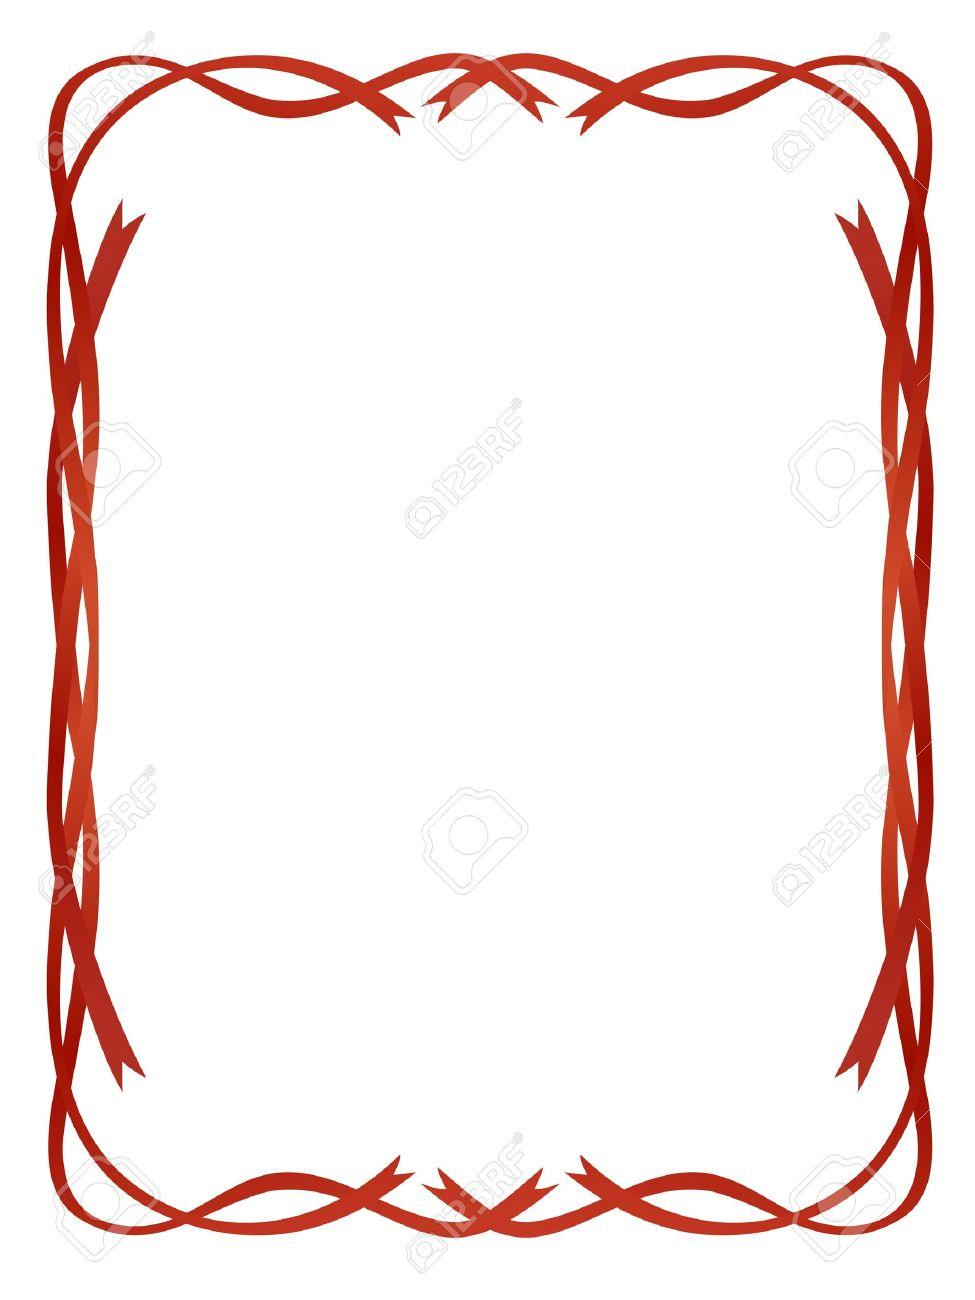 vector frame red ribbons isolated on white pattern royalty free rh 123rf com vector picture frame border picture frame vector pack